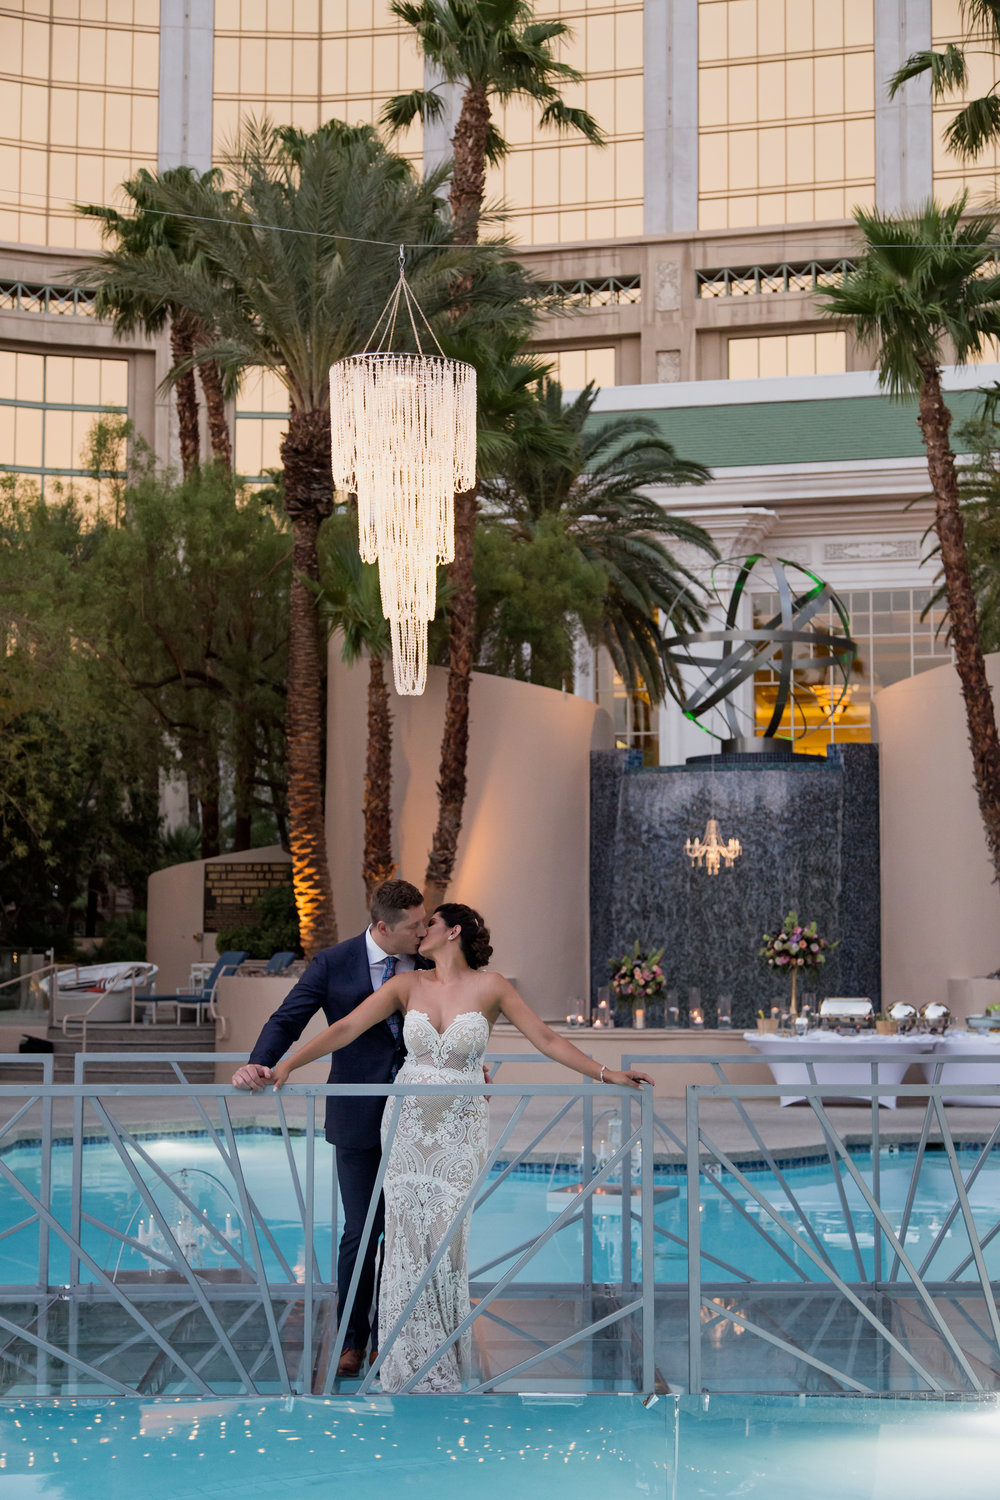 Joti & Field rave about Destination Wedding Planner Andrea Eppolito. Luxury wedding at Four Seasons included floating cake, chandeliers, and more! Photo by Stephen Salazar.